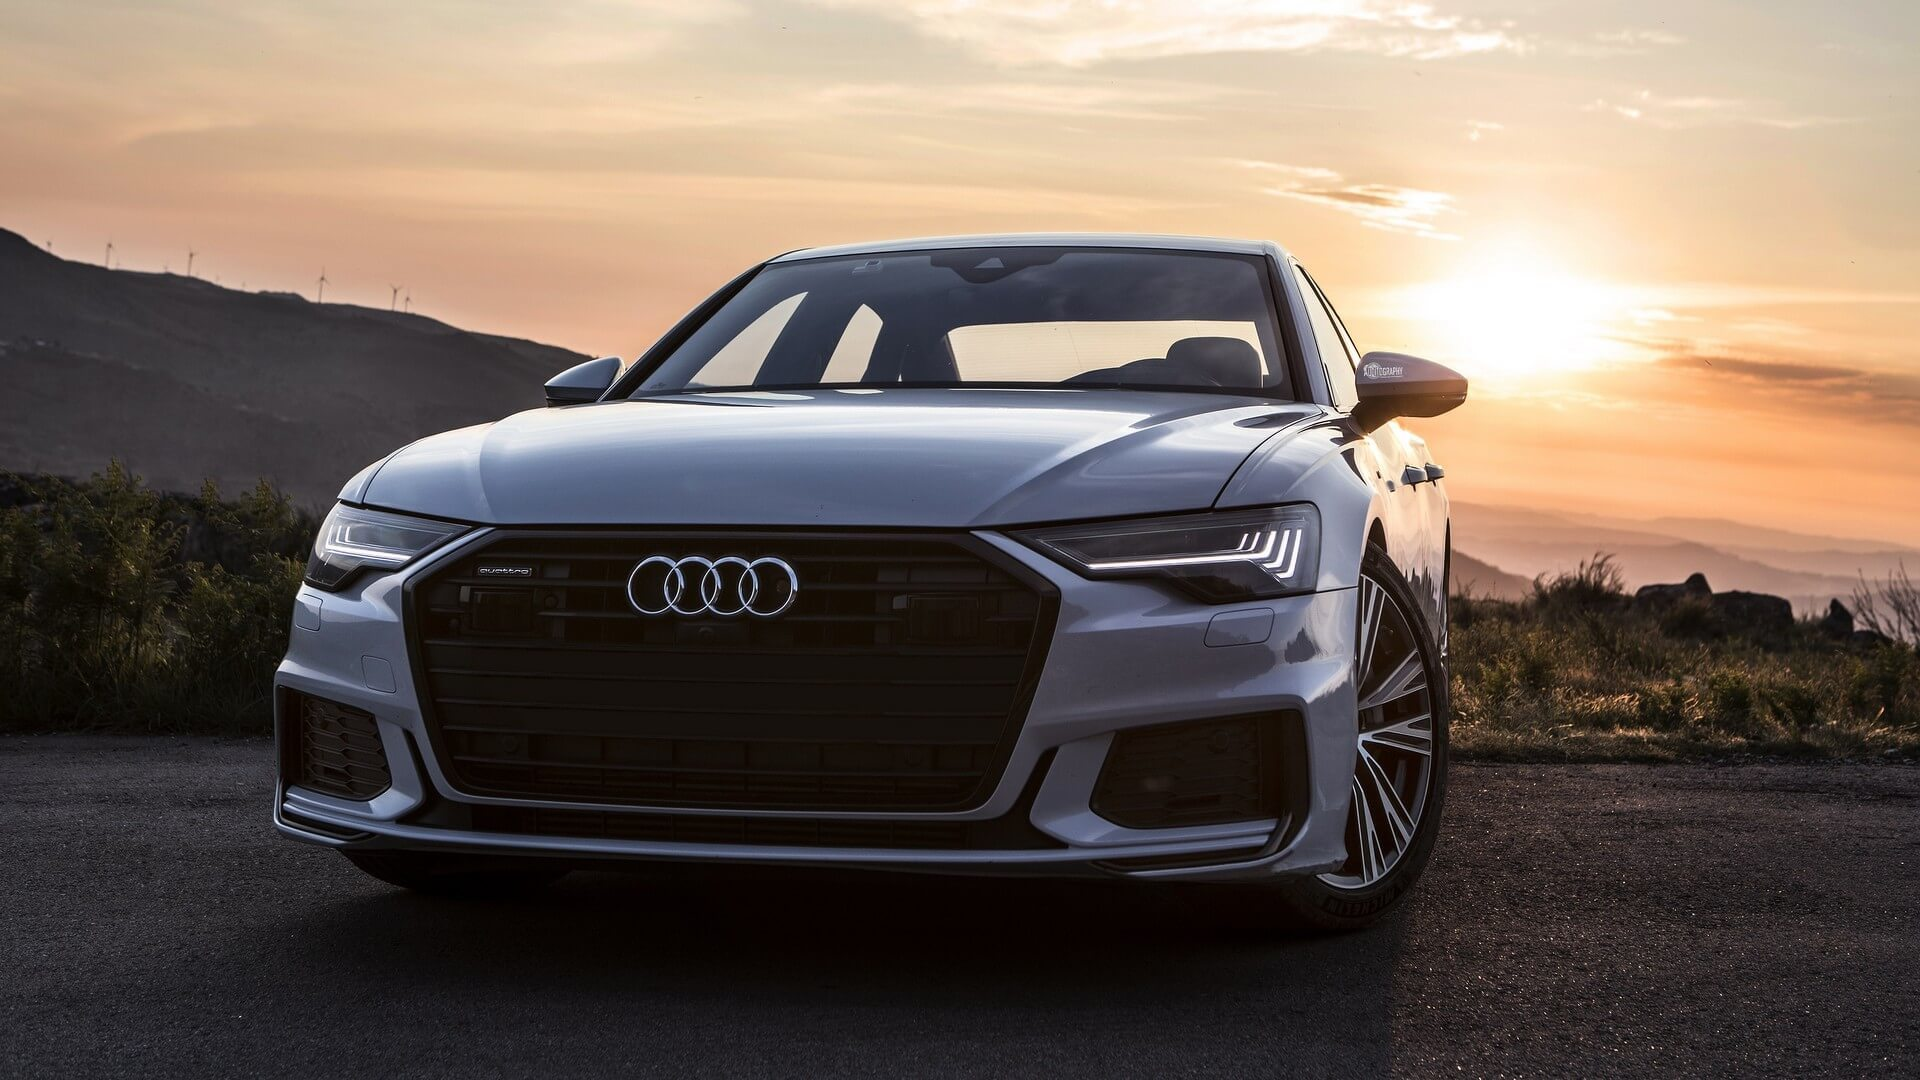 Audi A14 Beauty Shots Might Steer You Away From Buying A 14 Series | audi car series